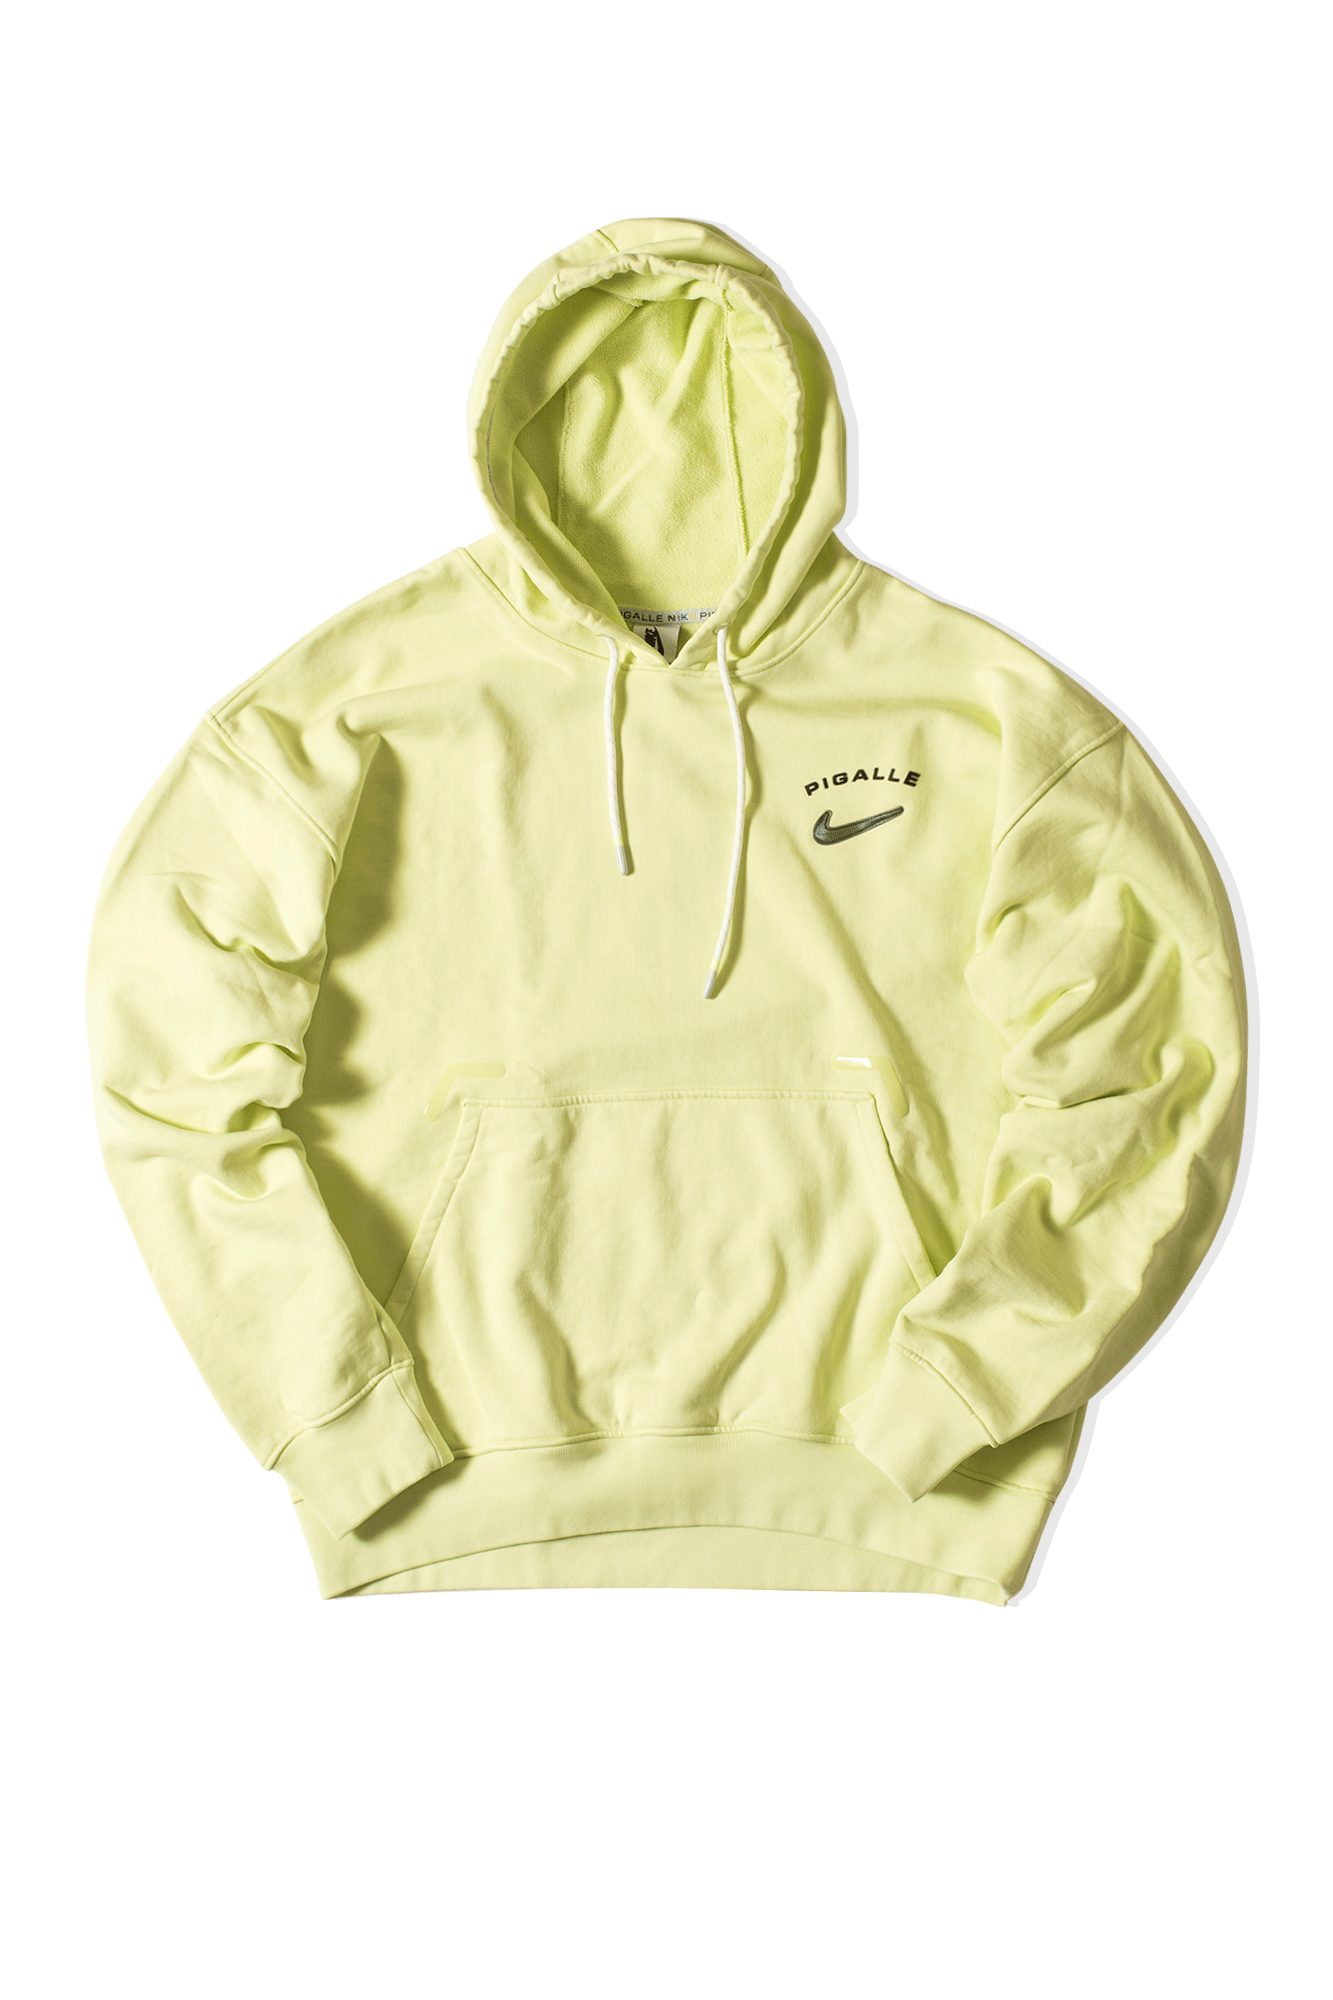 Hoodie x Pigalle Giallo